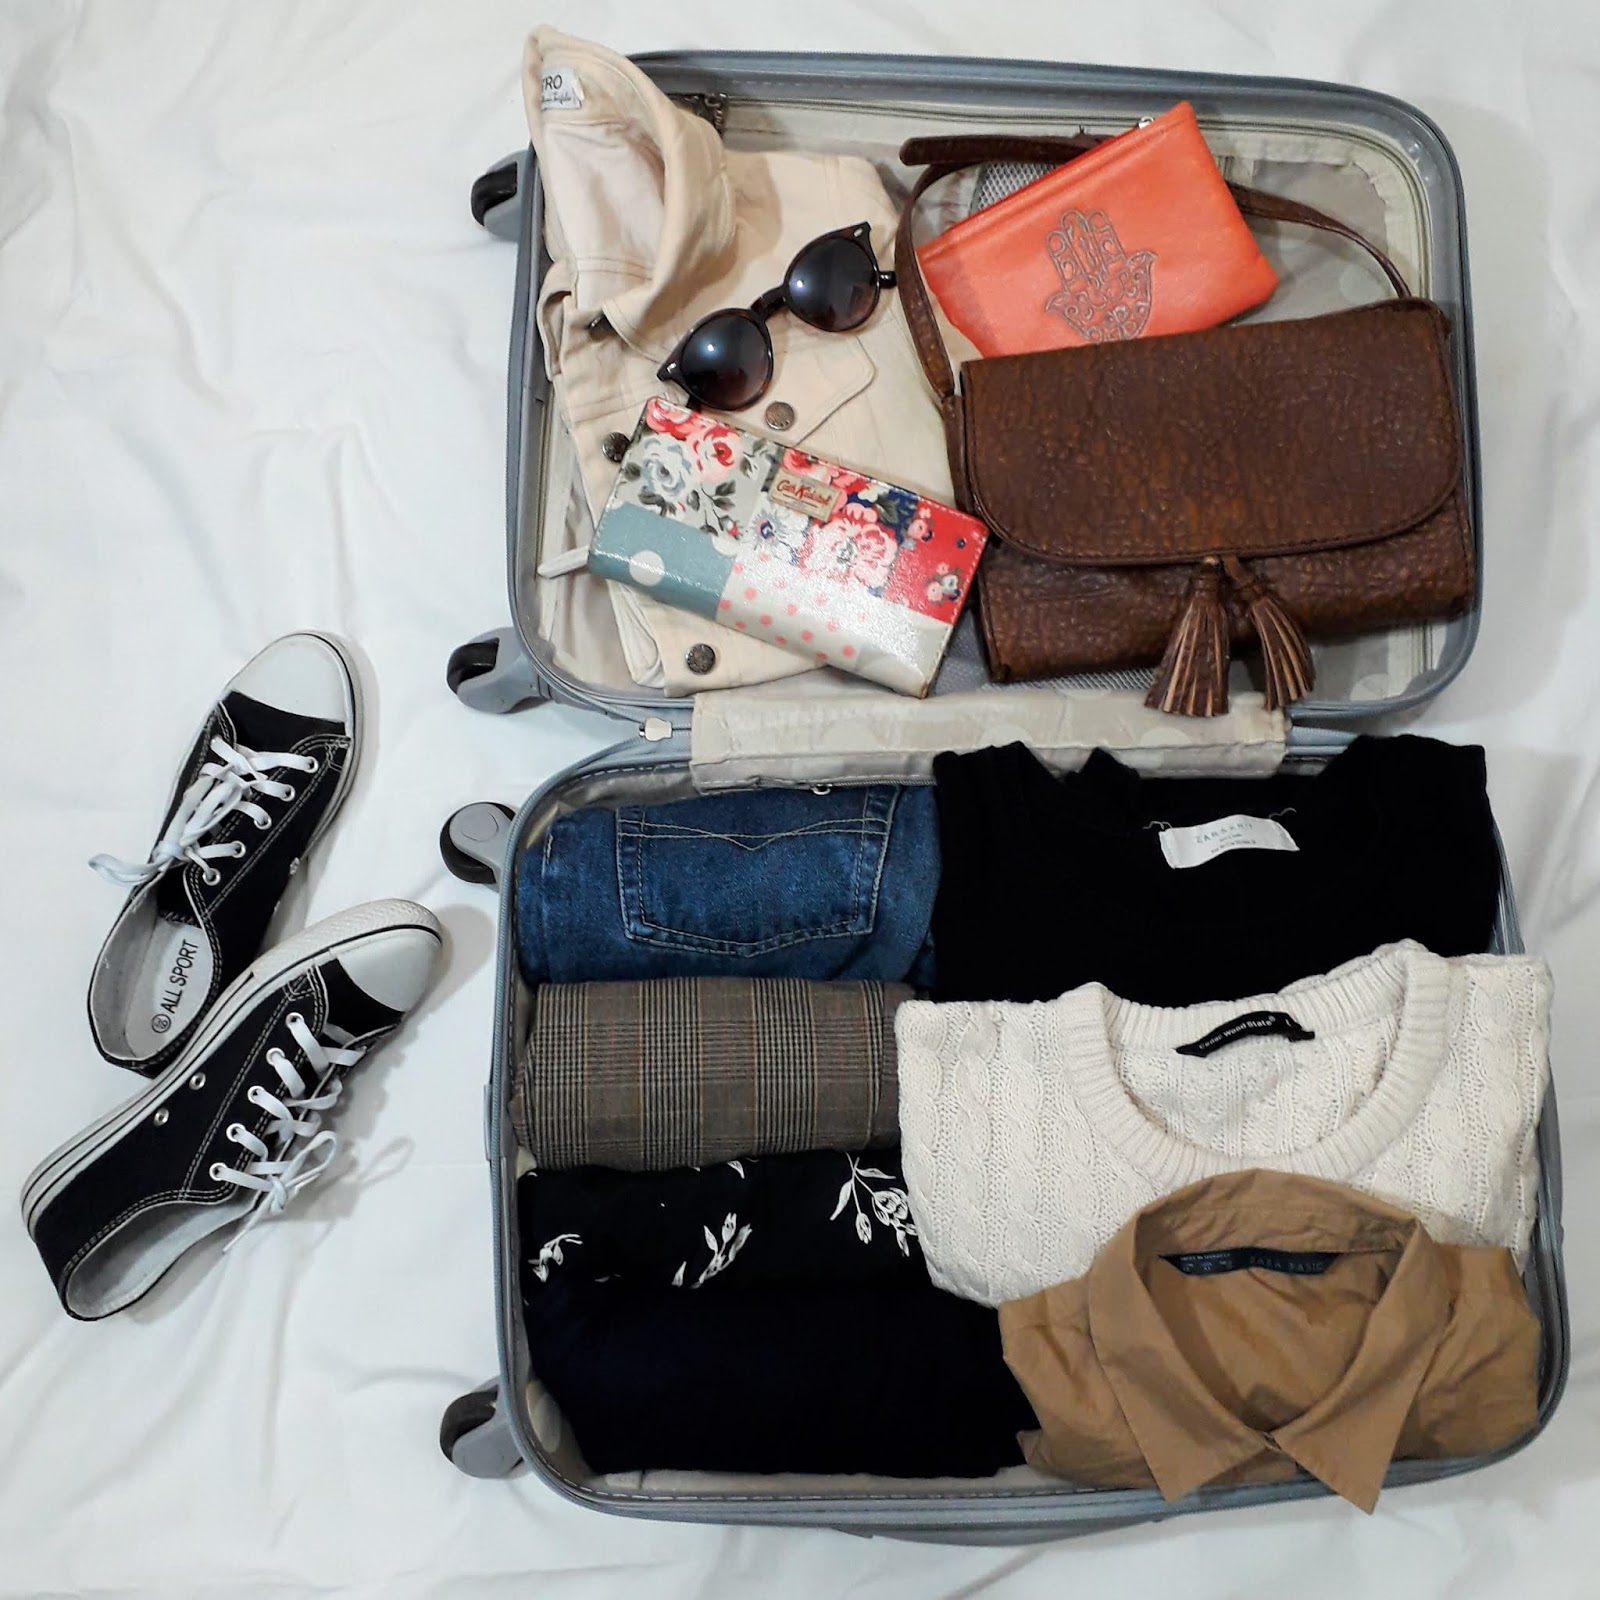 pack with me - packing